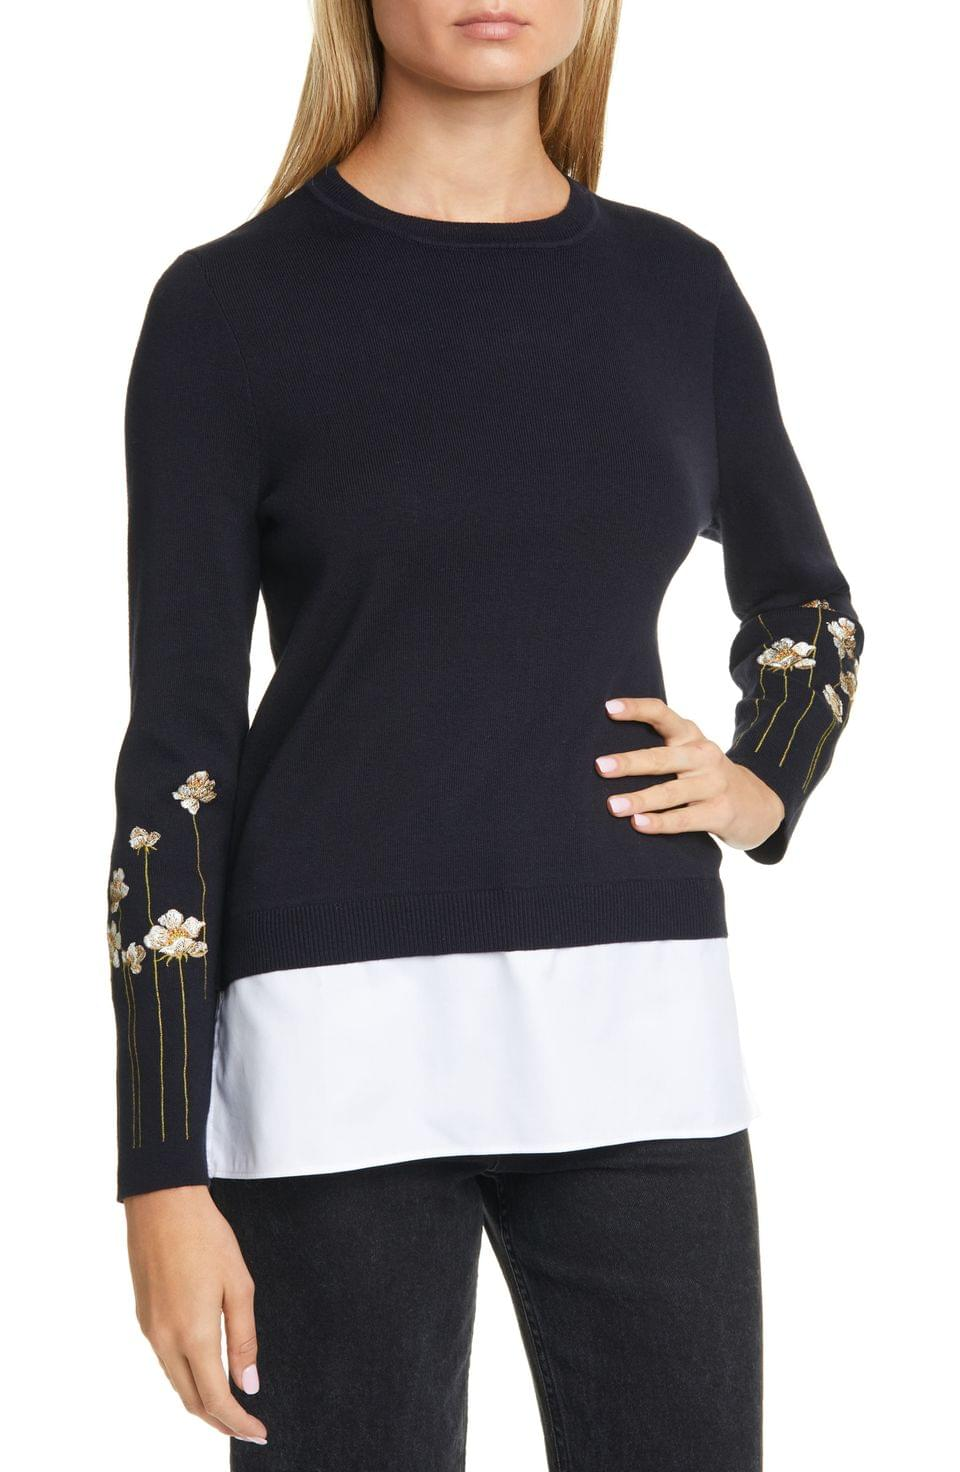 Women's Ted Baker London Floral Embroidery Layered Cotton Sweater